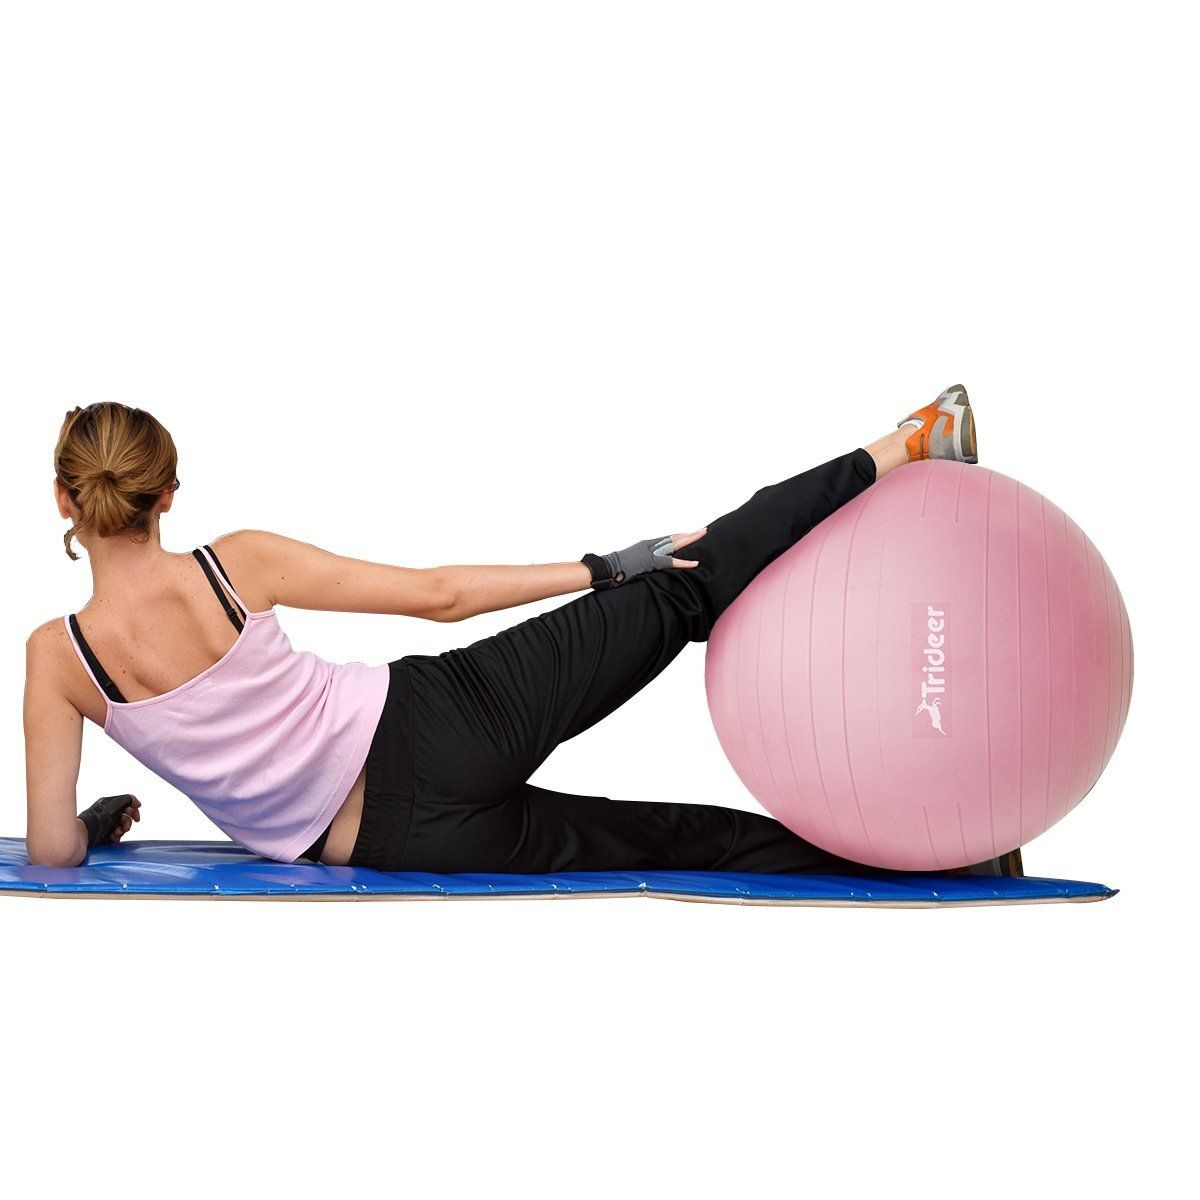 Yoga Ball Chair Yoga Ball Chairs Balance Ball For Stability Guide And Review